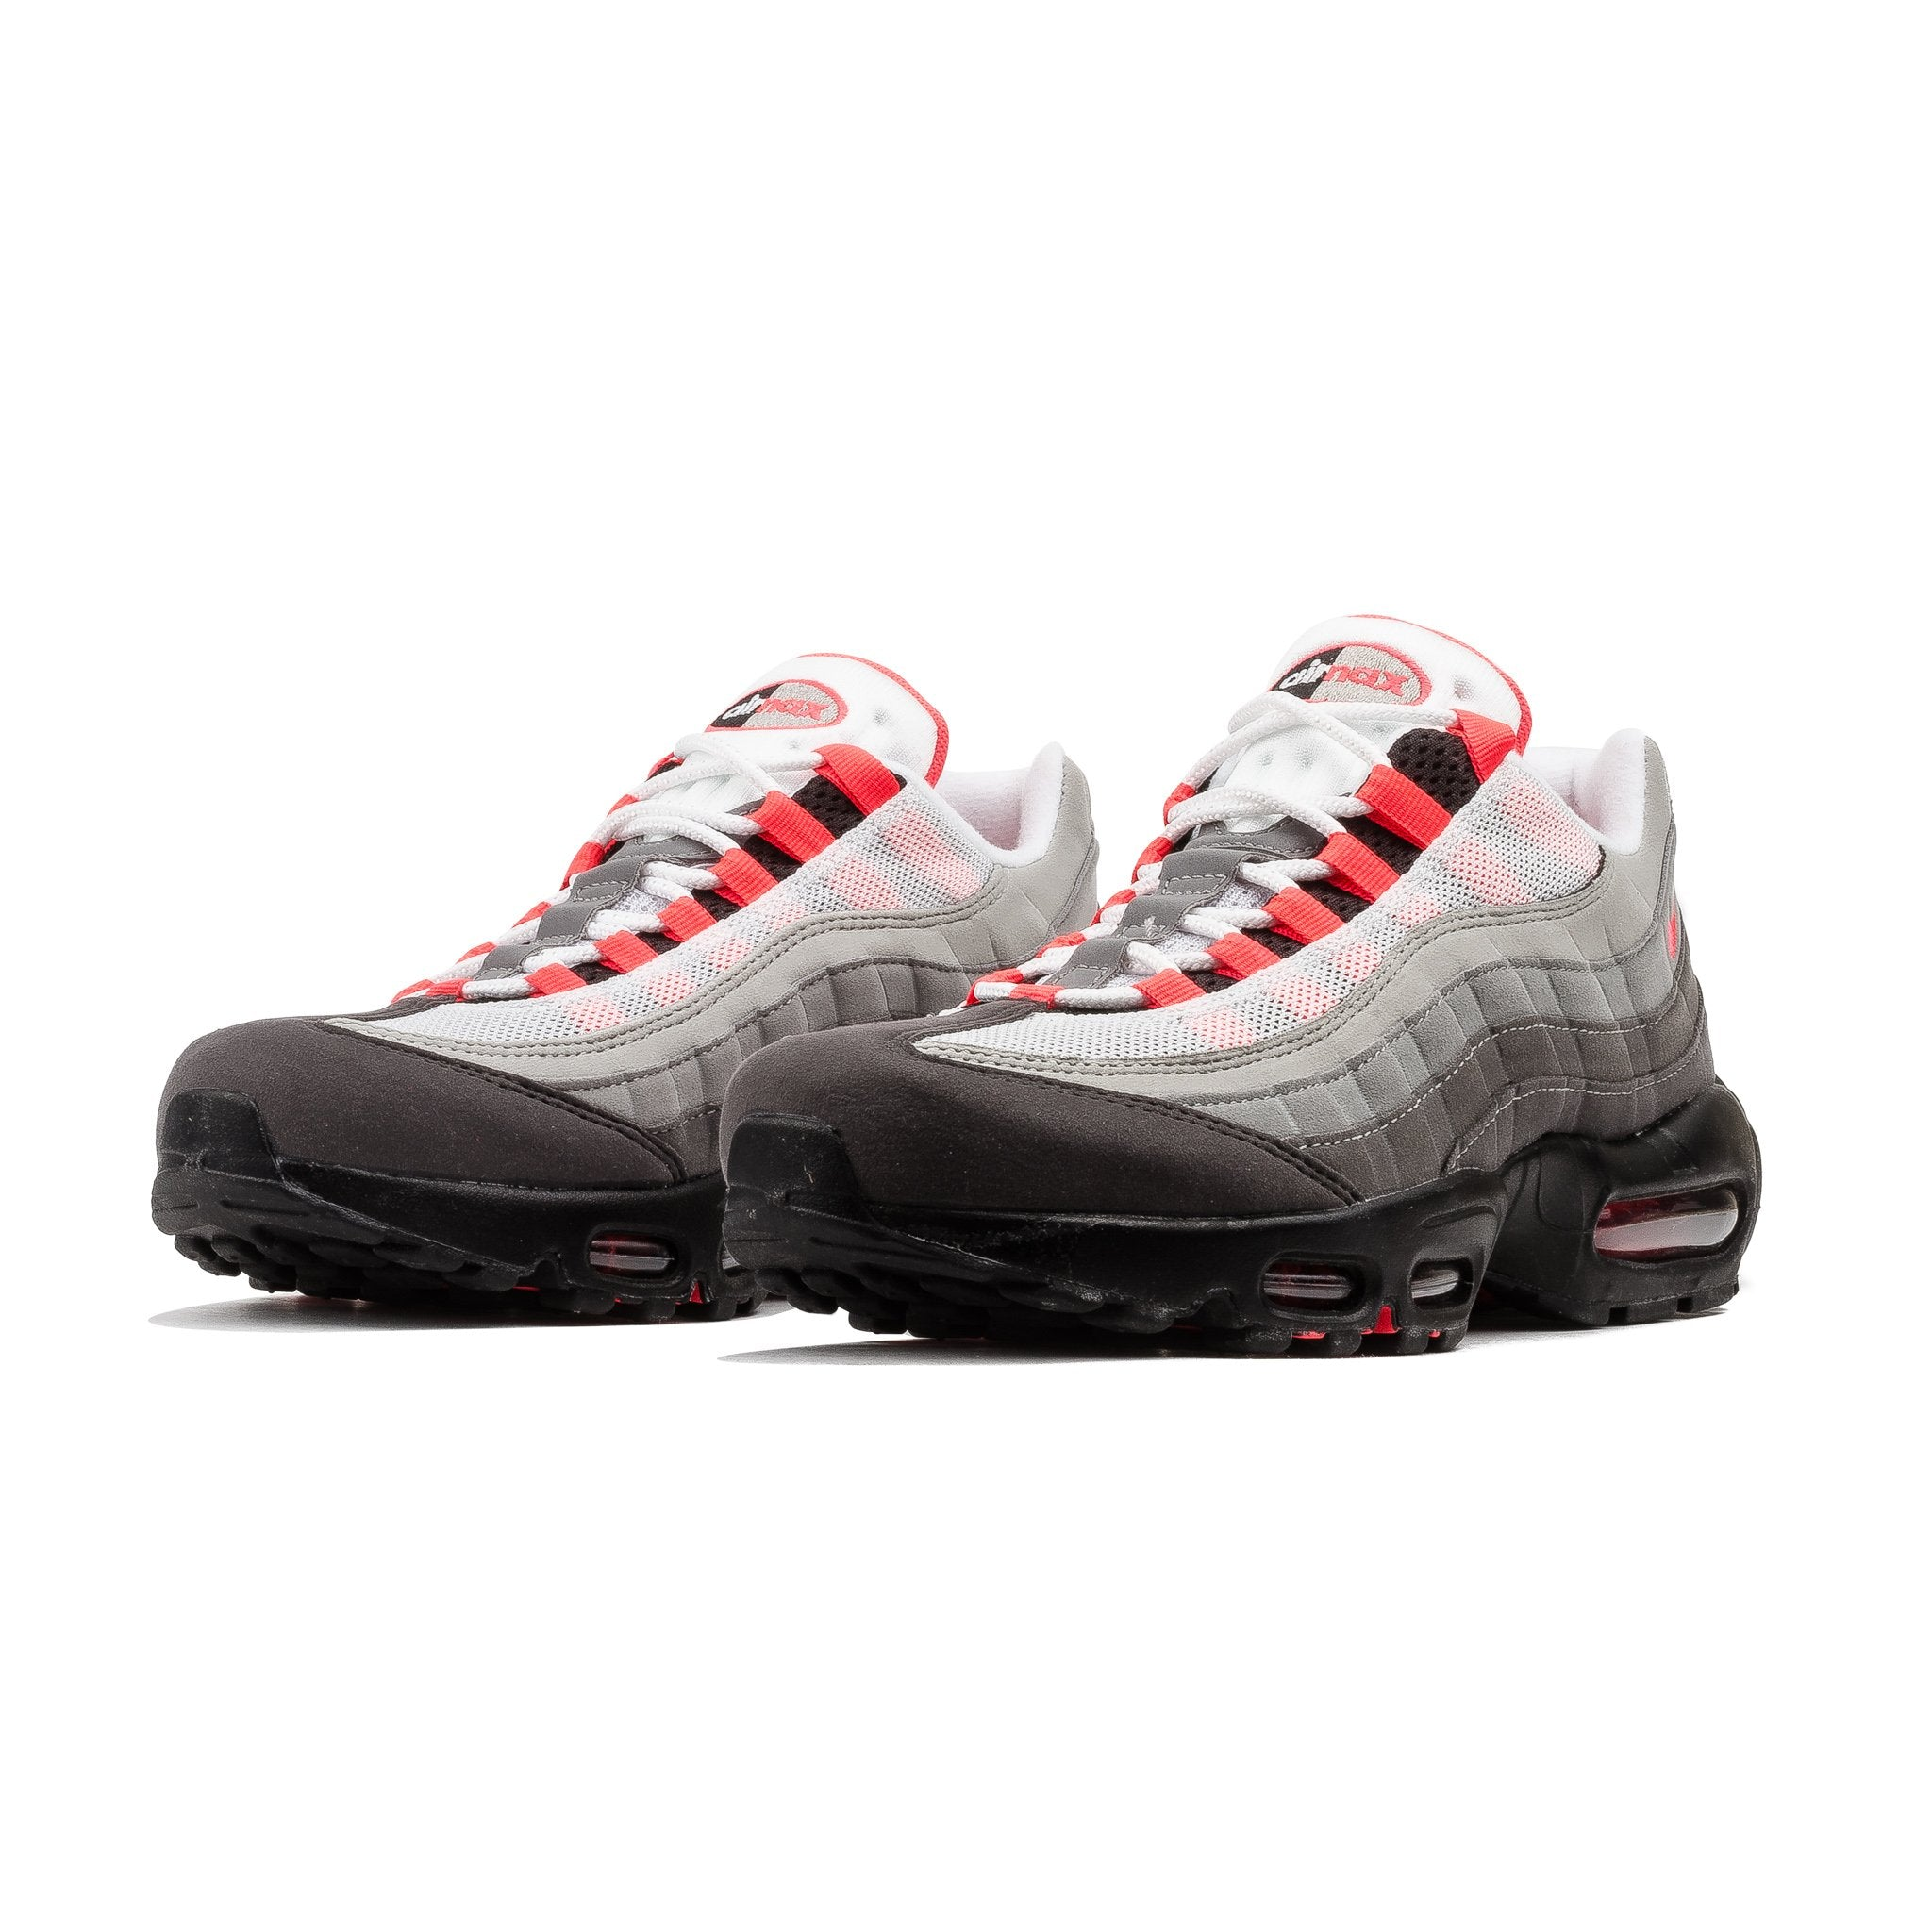 100% authentic 023d1 d588d Air Max 95 OG AT2865-100 White Solar Red